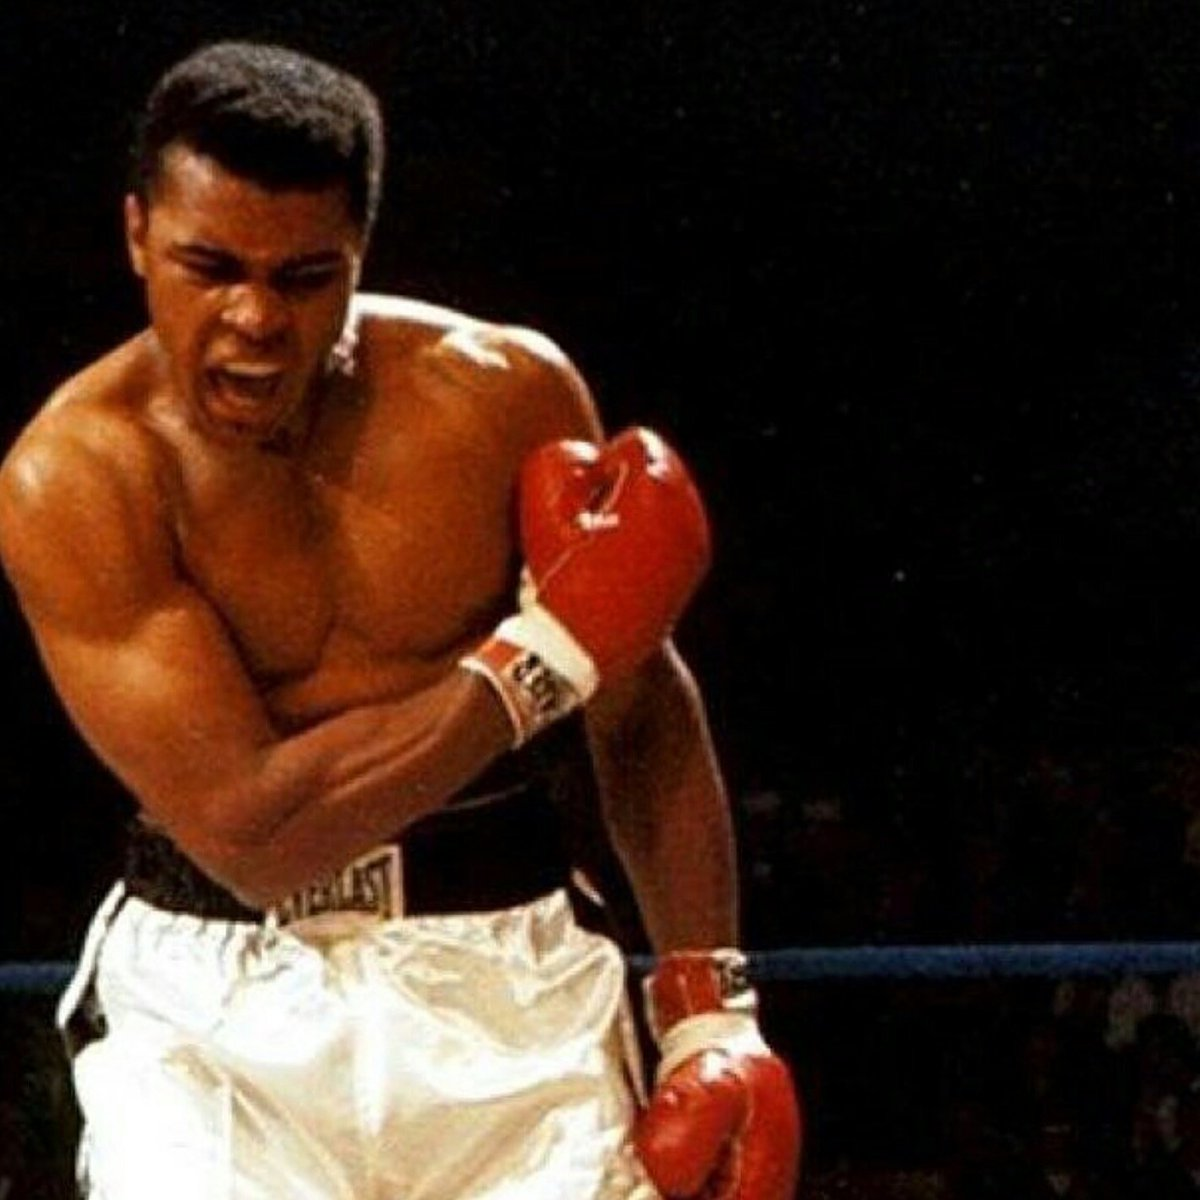 """Float like a butterfly, sting like a bee"" #RIPMuhammadAli https://t.co/pi0hwn8r8e"